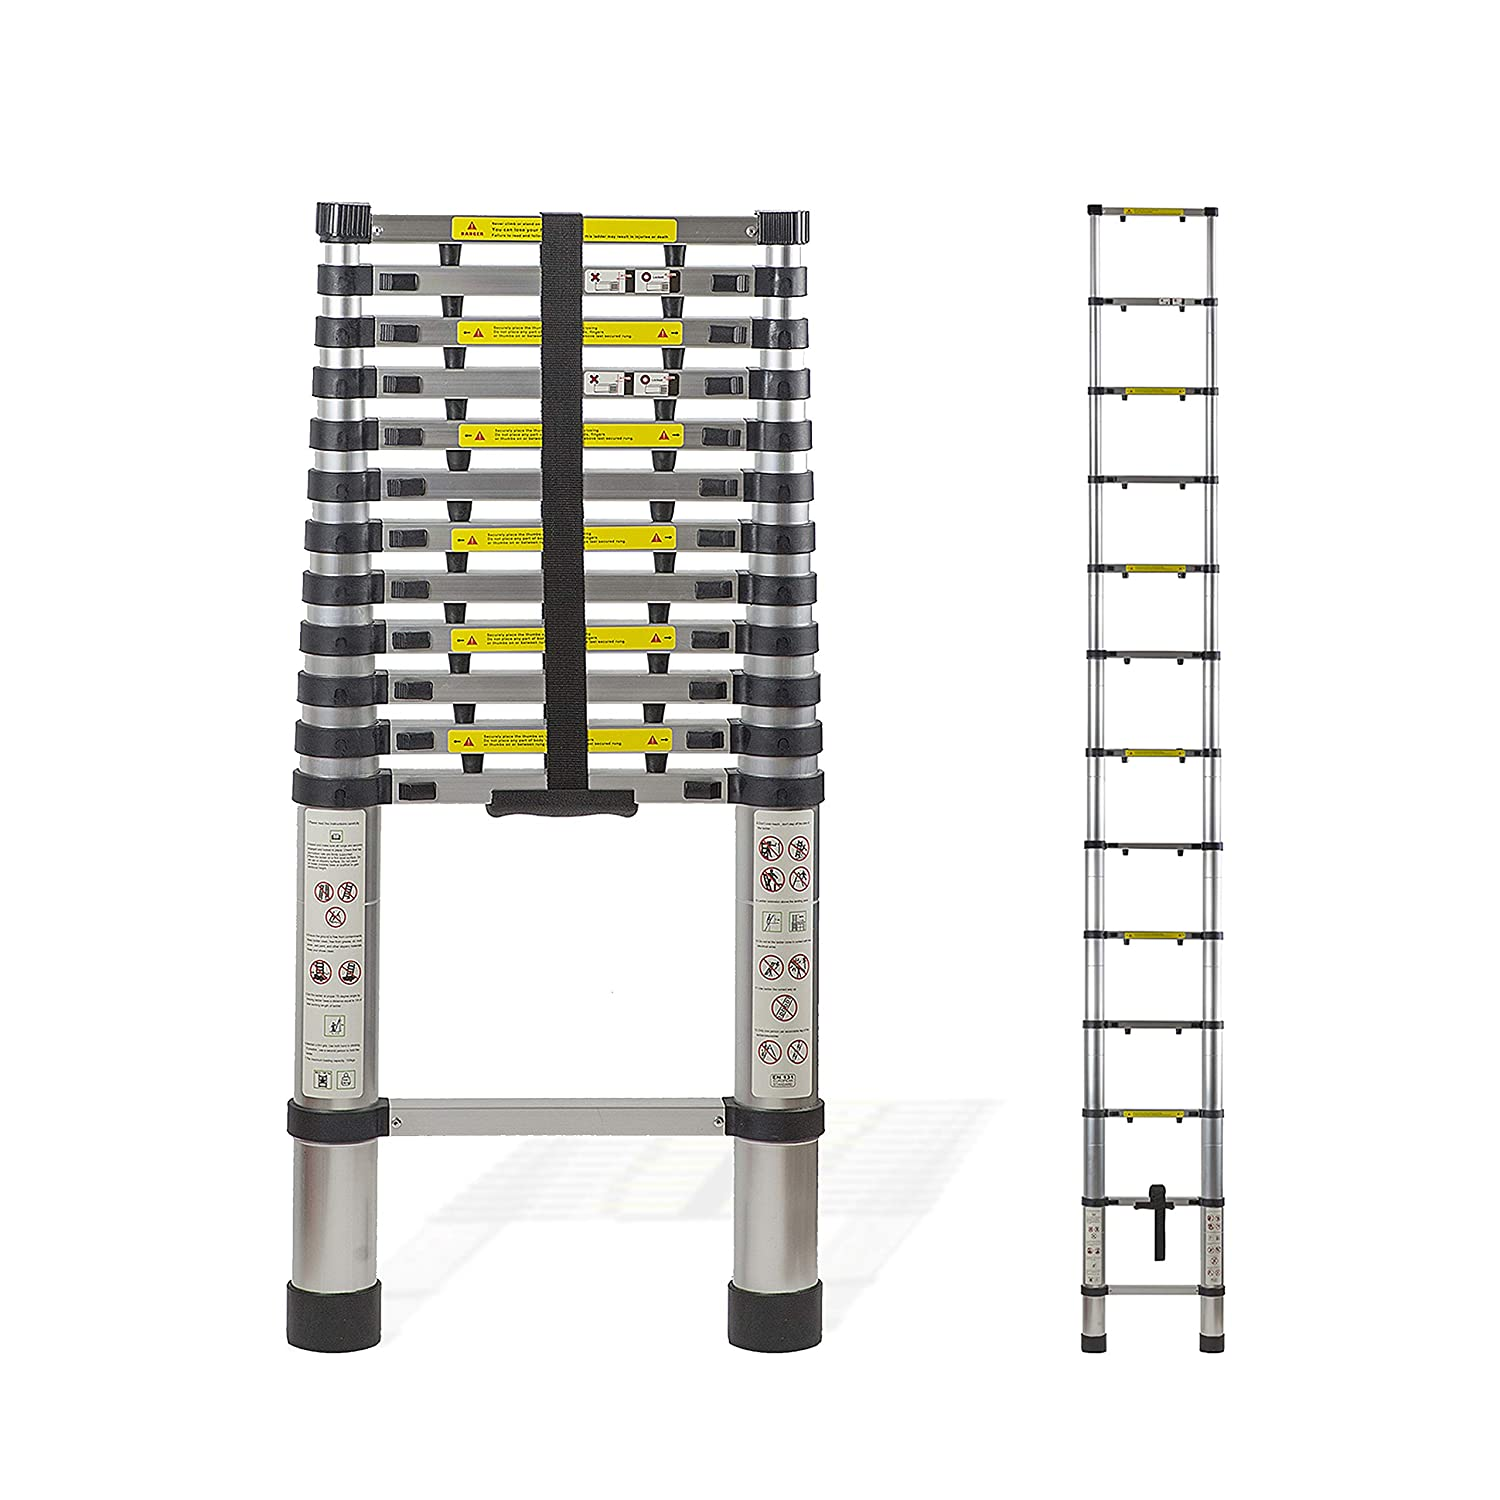 Aluminum 12.5 FT Telescoping Ladder Extendable Multi-Purpose: Finger Protection Spacers, Slip-Proof Feet, Portable Heavy Duty, Super Size Telescope Extension Collapsible, En131 Certified